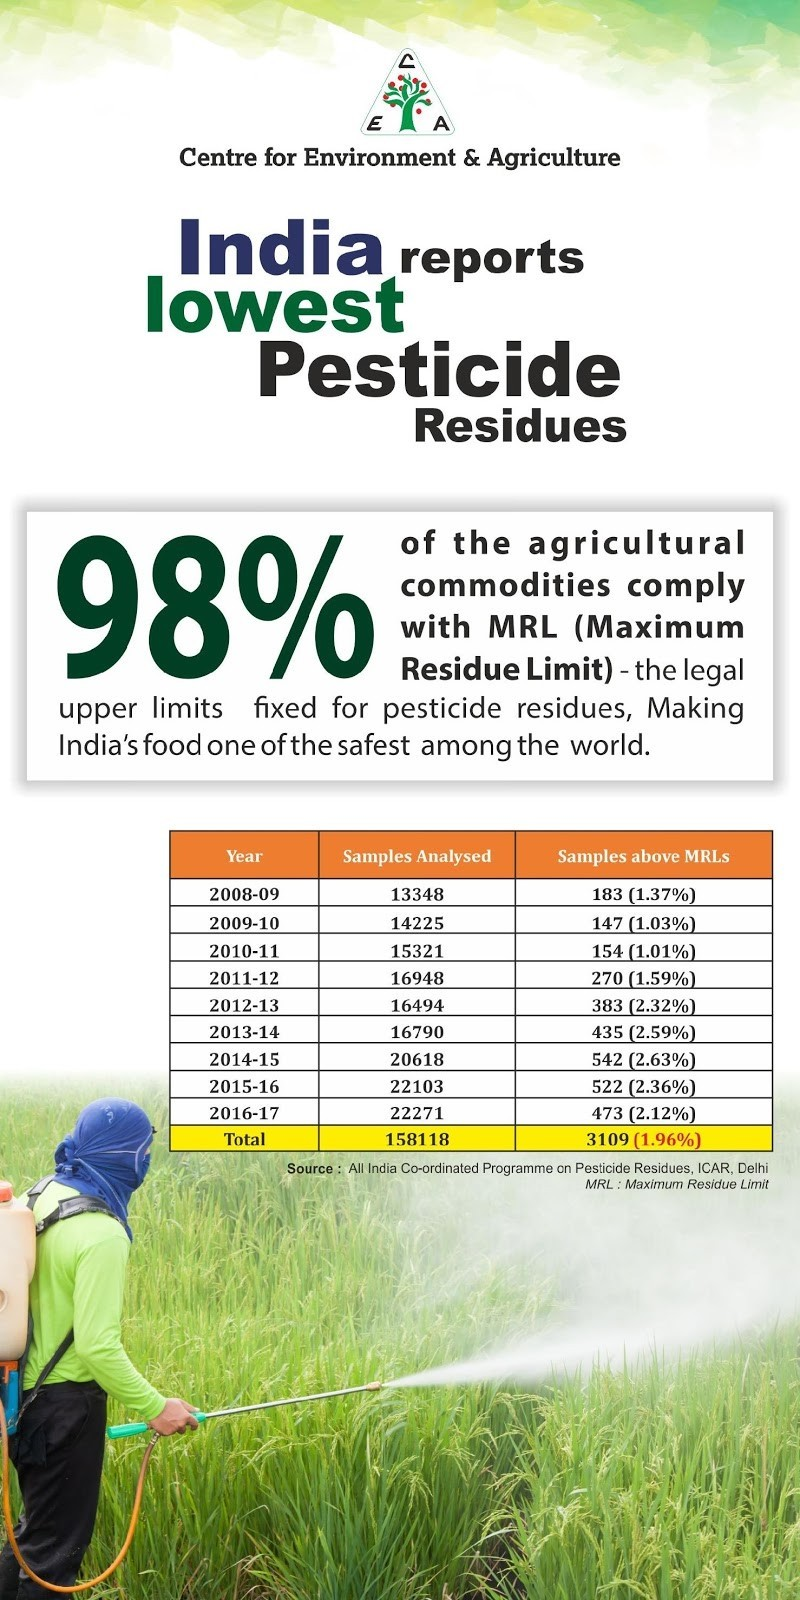 Poster on India's Pesticide Residues Uses